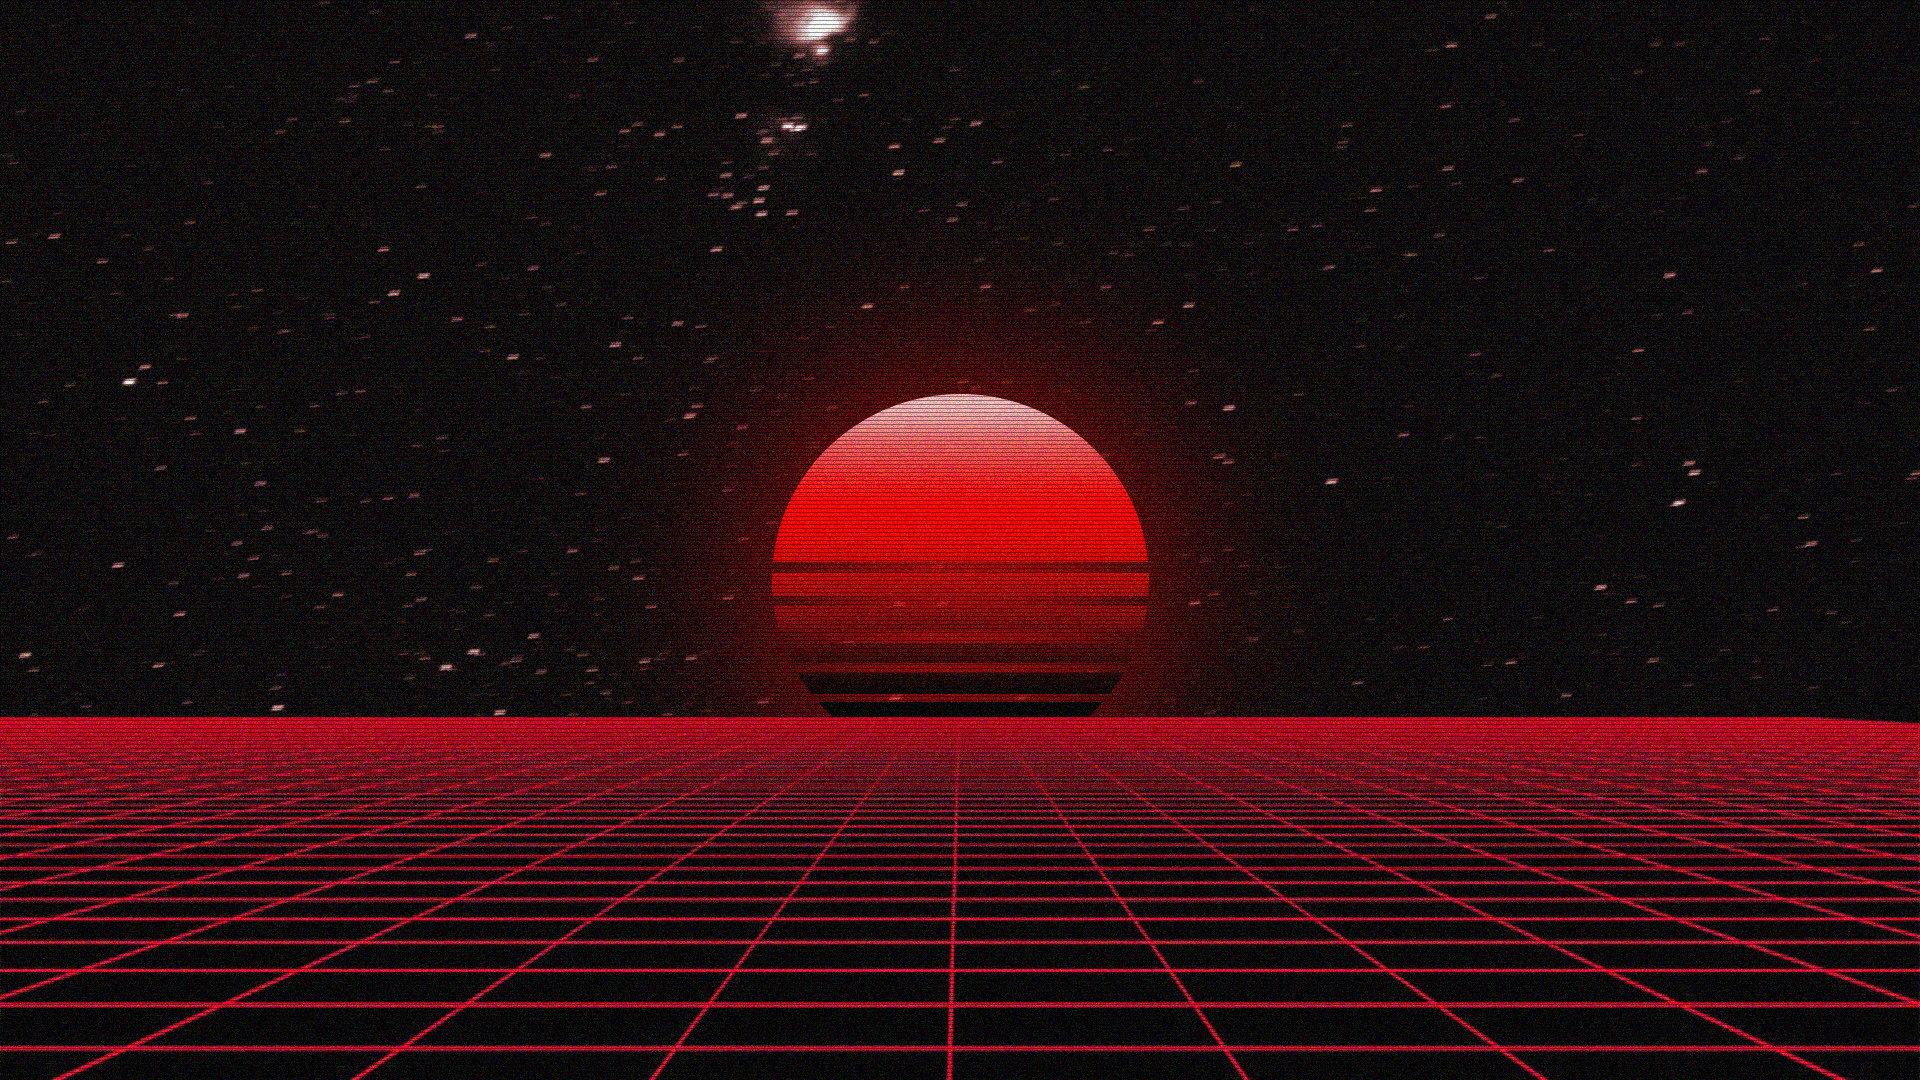 Red Vaporwave Wallpaper Posted By Samantha Sellers